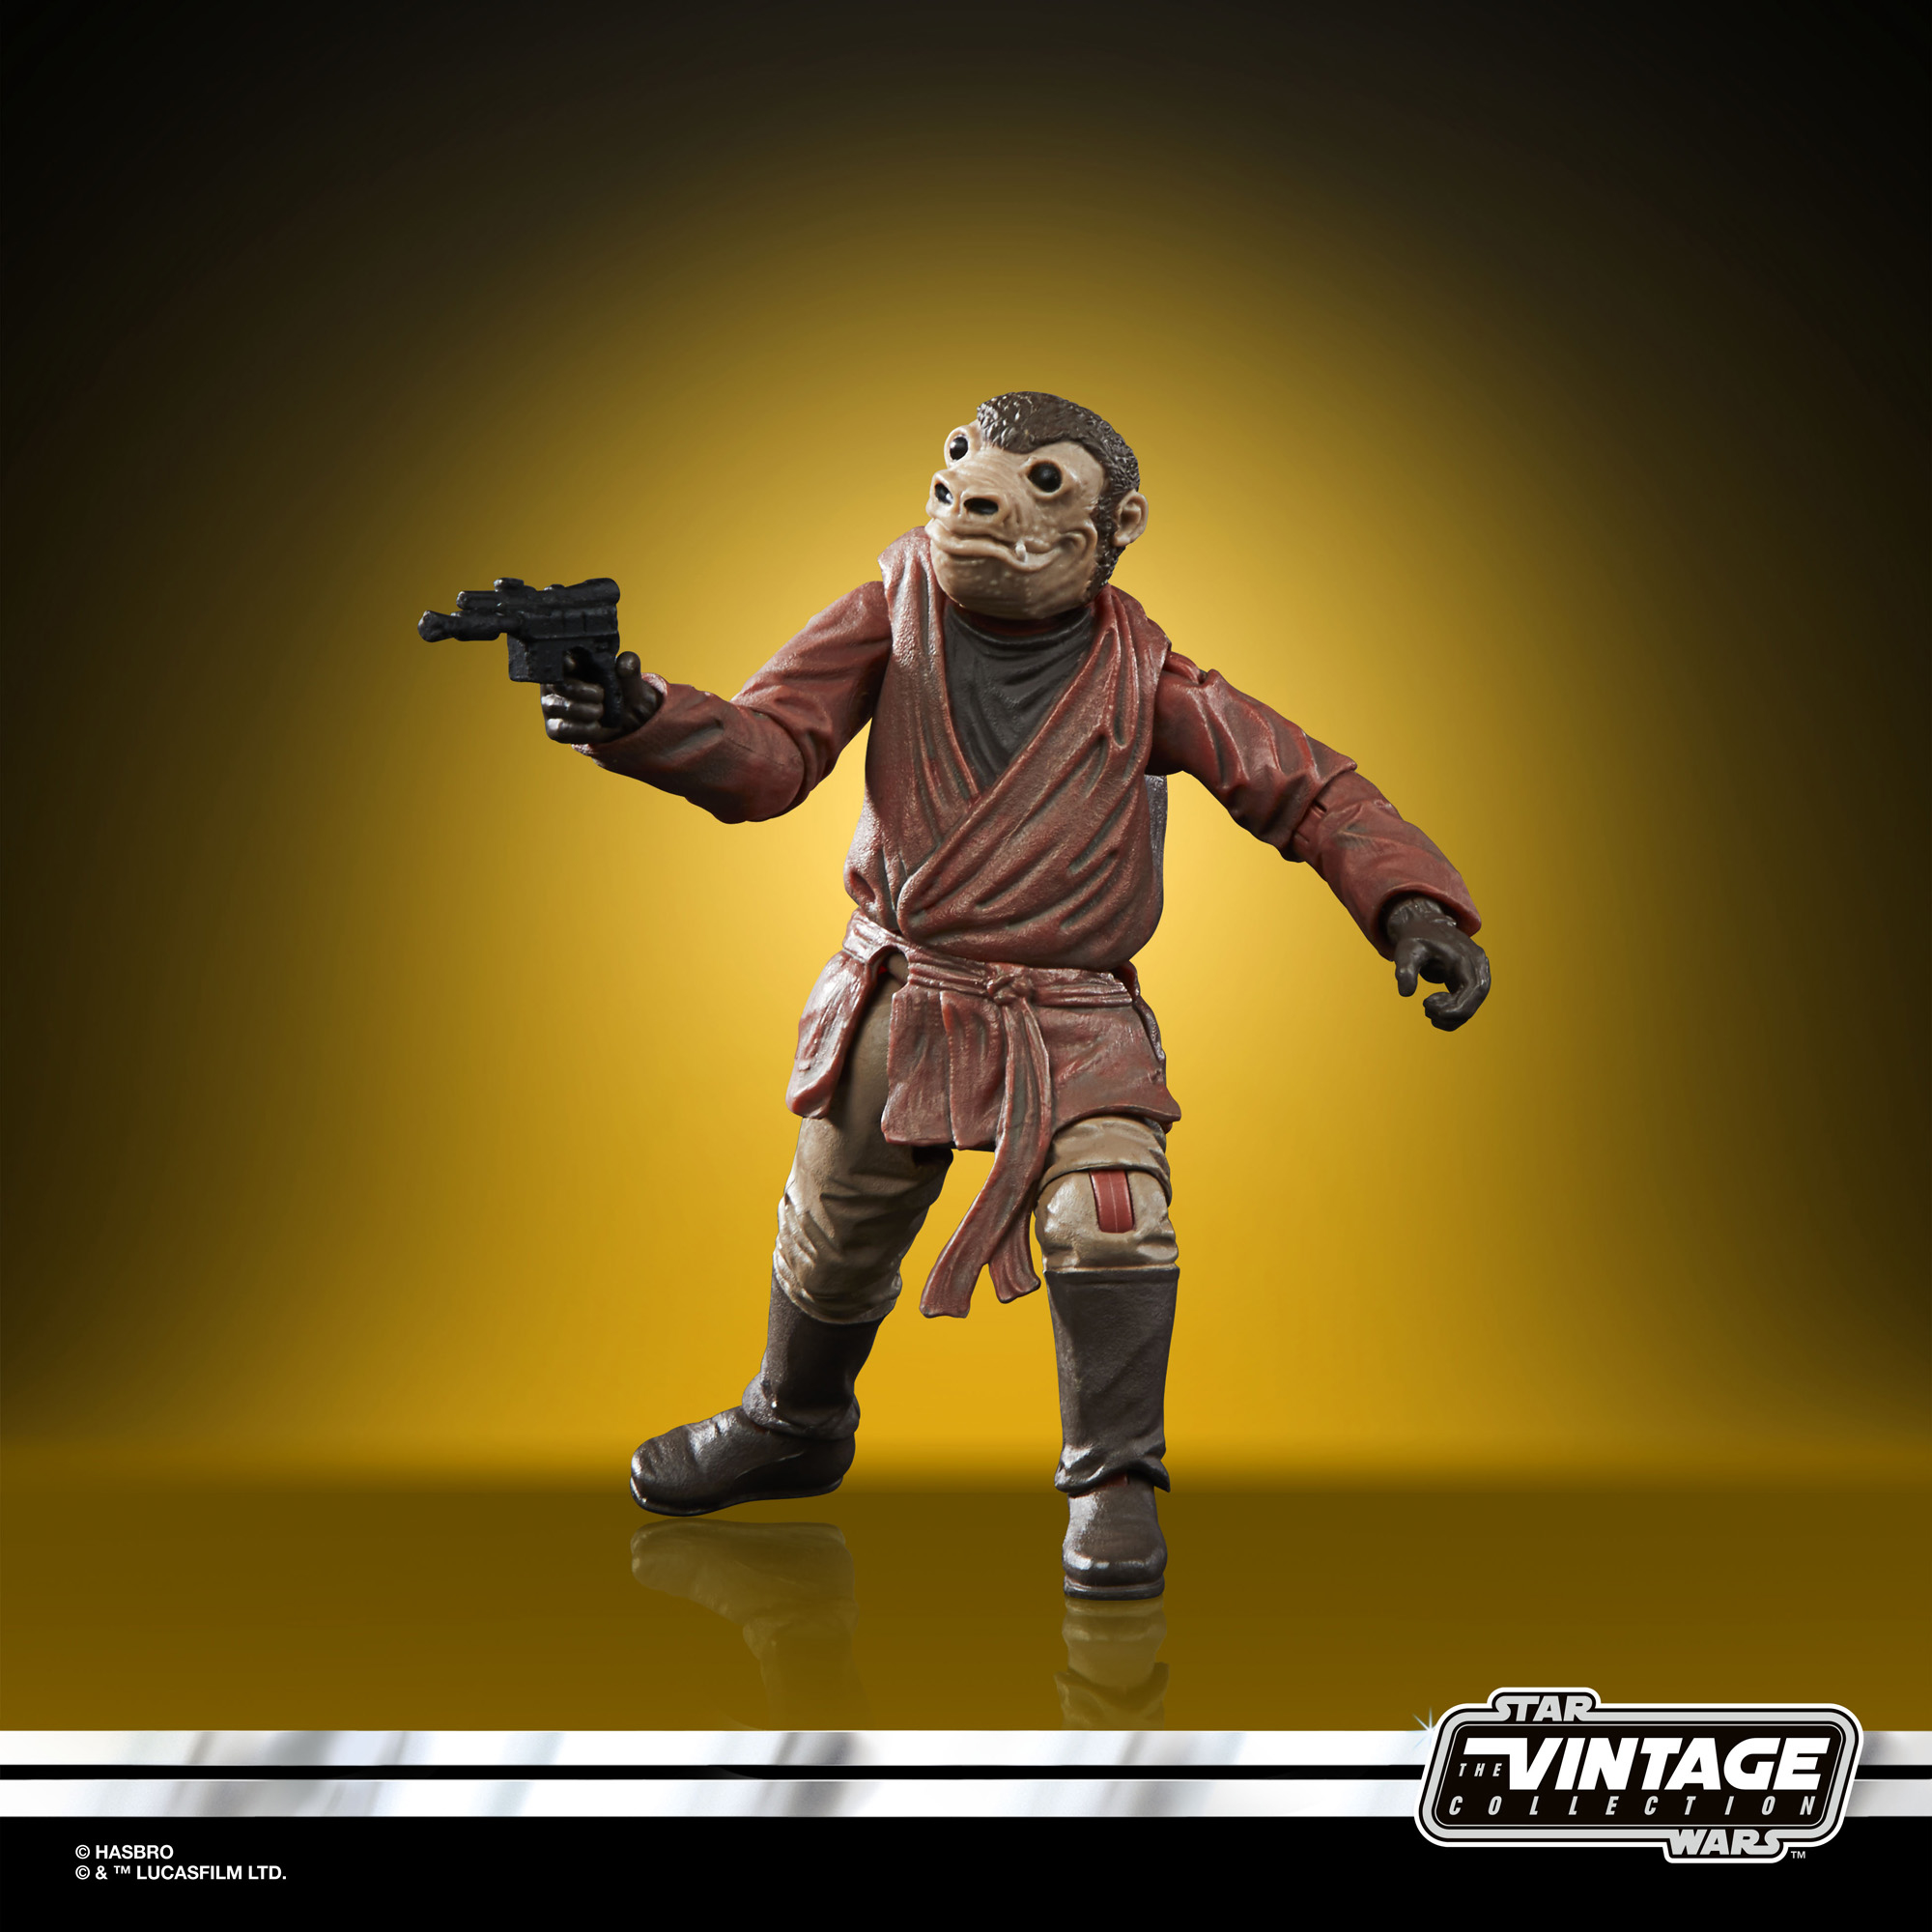 Star Wars - The Vintage Collection - Zutton 3.75inch Action Figure